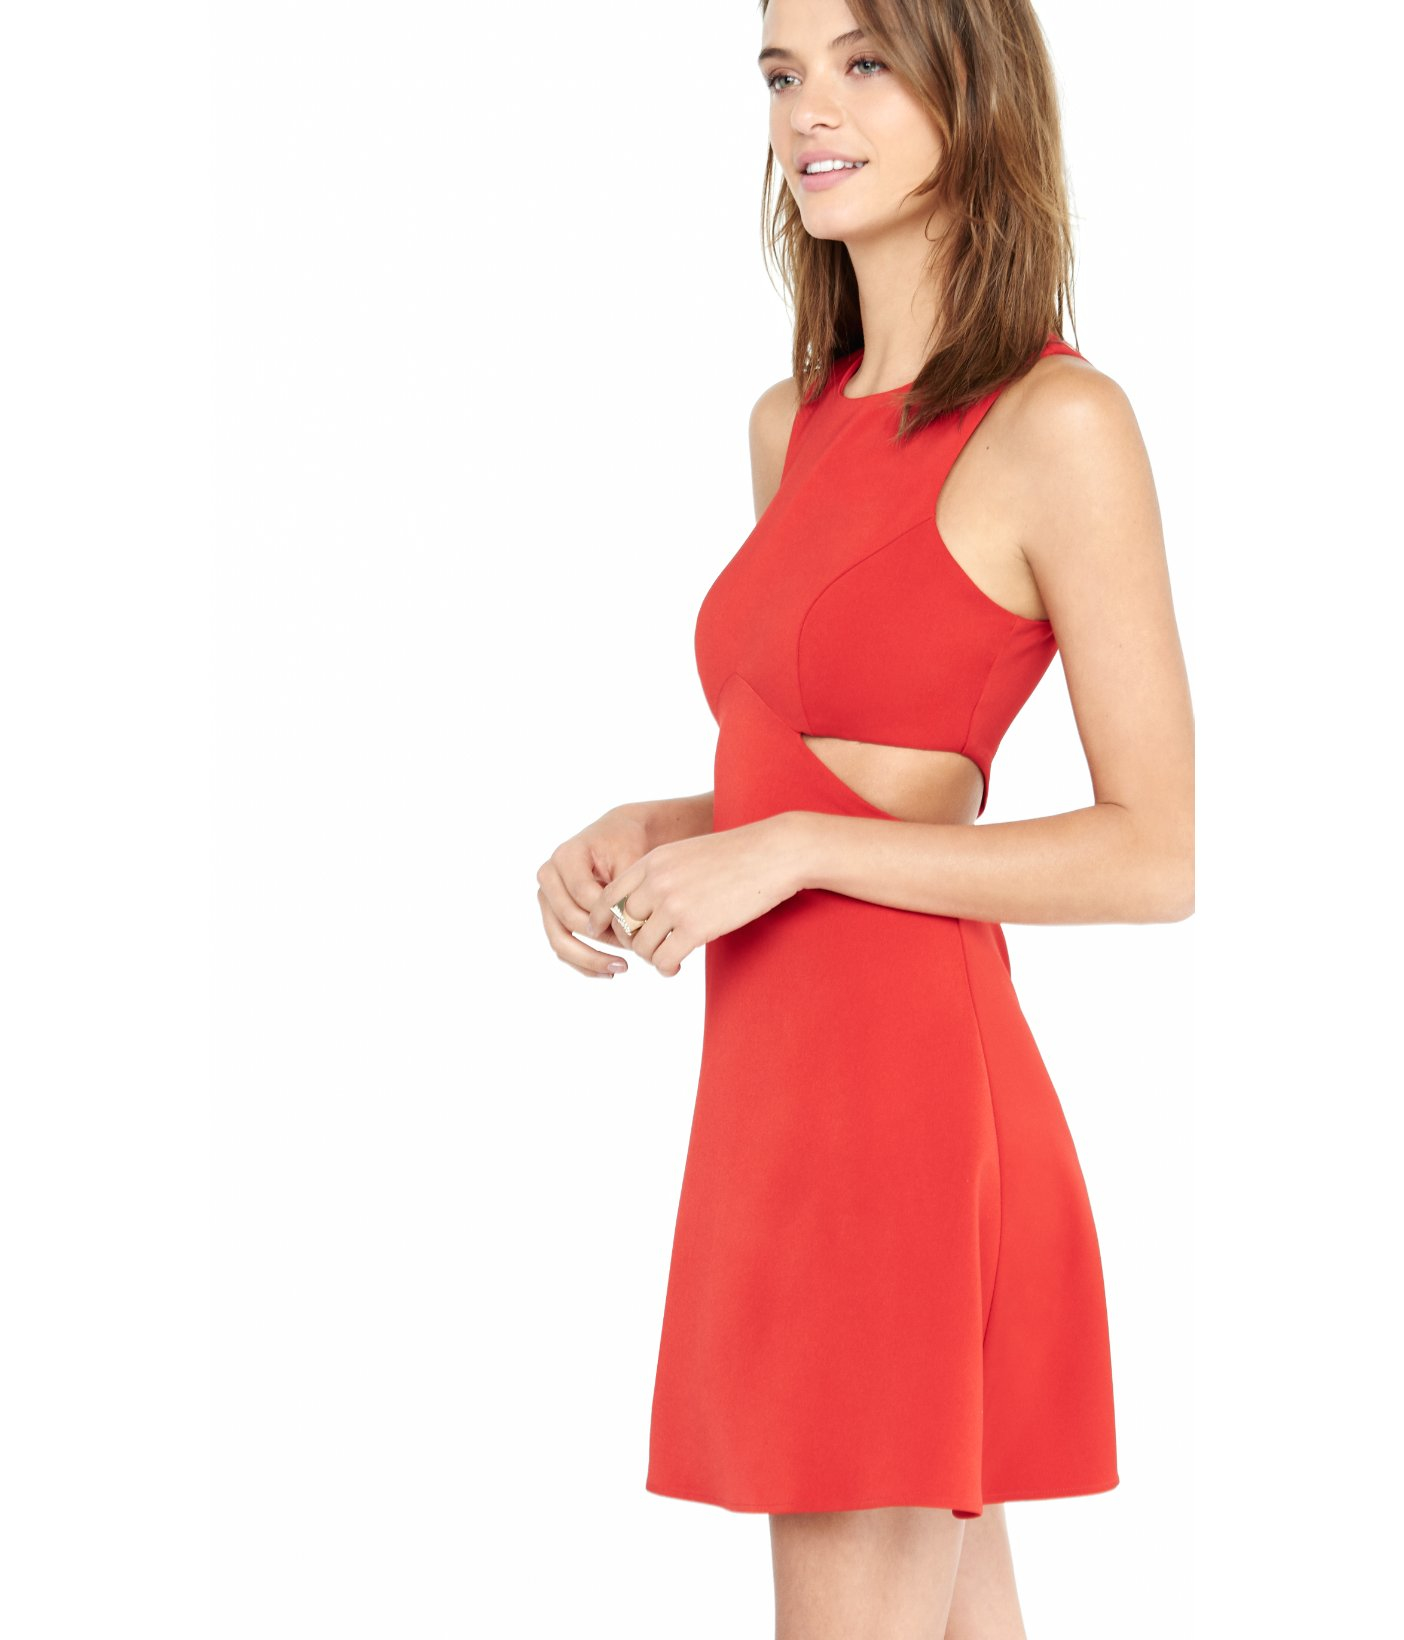 Images of Red Cut Out Dress - Reikian